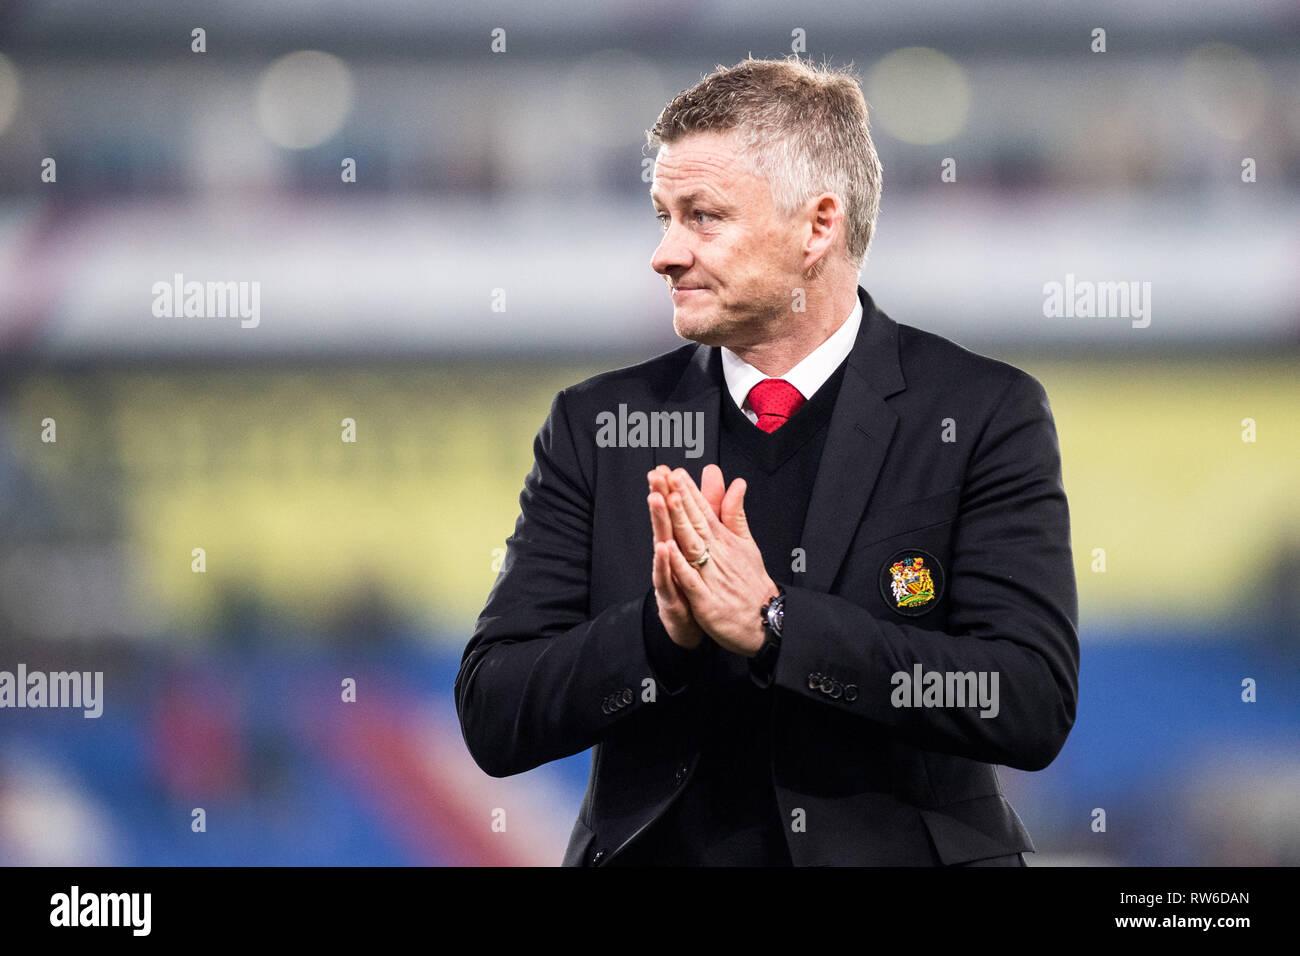 LONDON, ENGLAND - FEBRUARY 27: manager Ole Gunnar Solskjaer of Manchester United reaction during the Premier League match between Crystal Palace and M - Stock Image